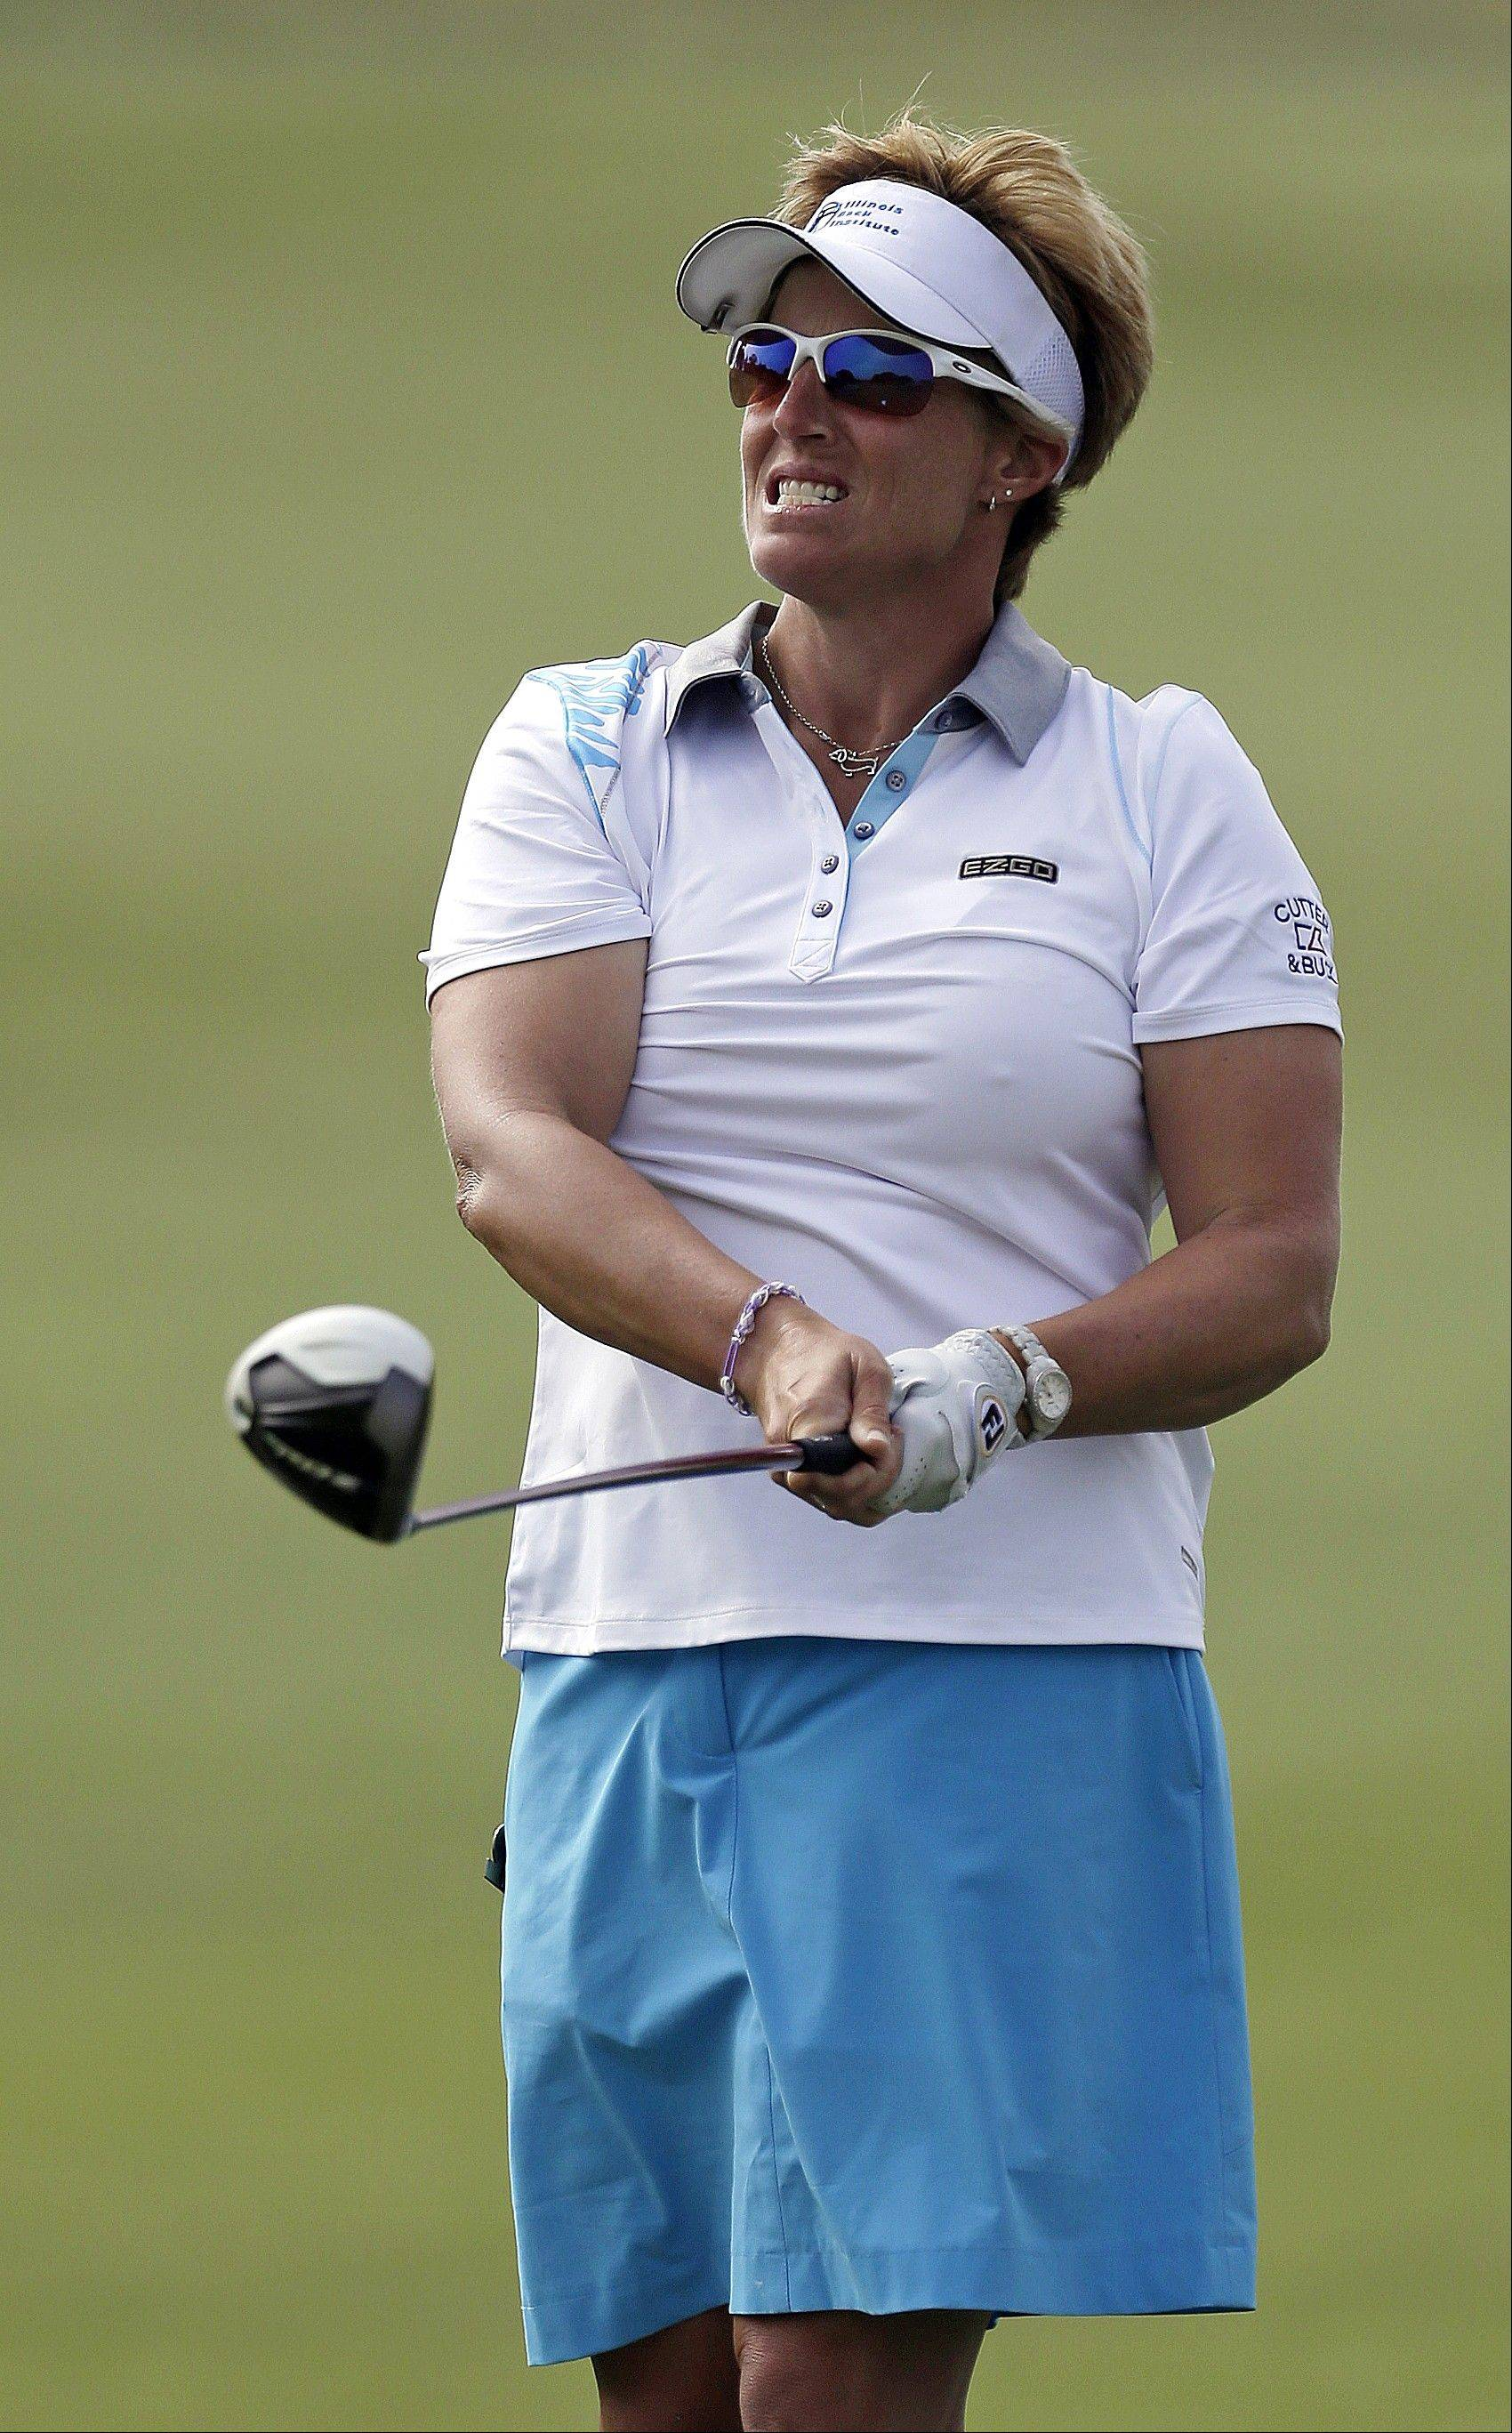 Two-time Illinois Women's Open champ Nicole Jeray will be among the contenders for this year's championship at Mistwood.